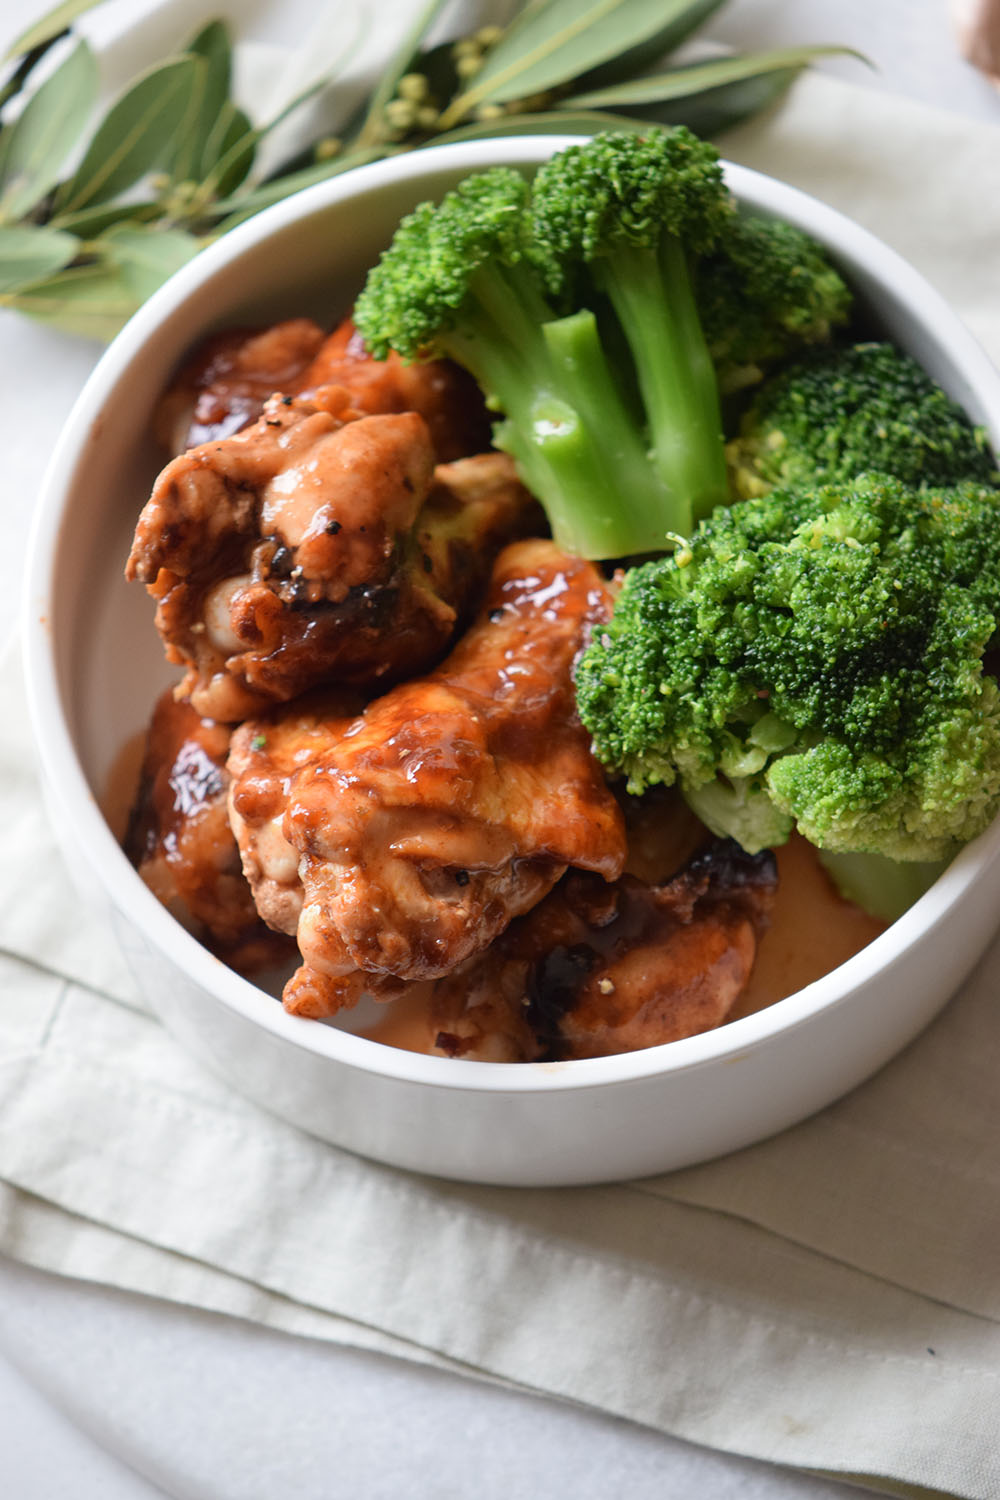 Baked Firecracker Chicken Wings